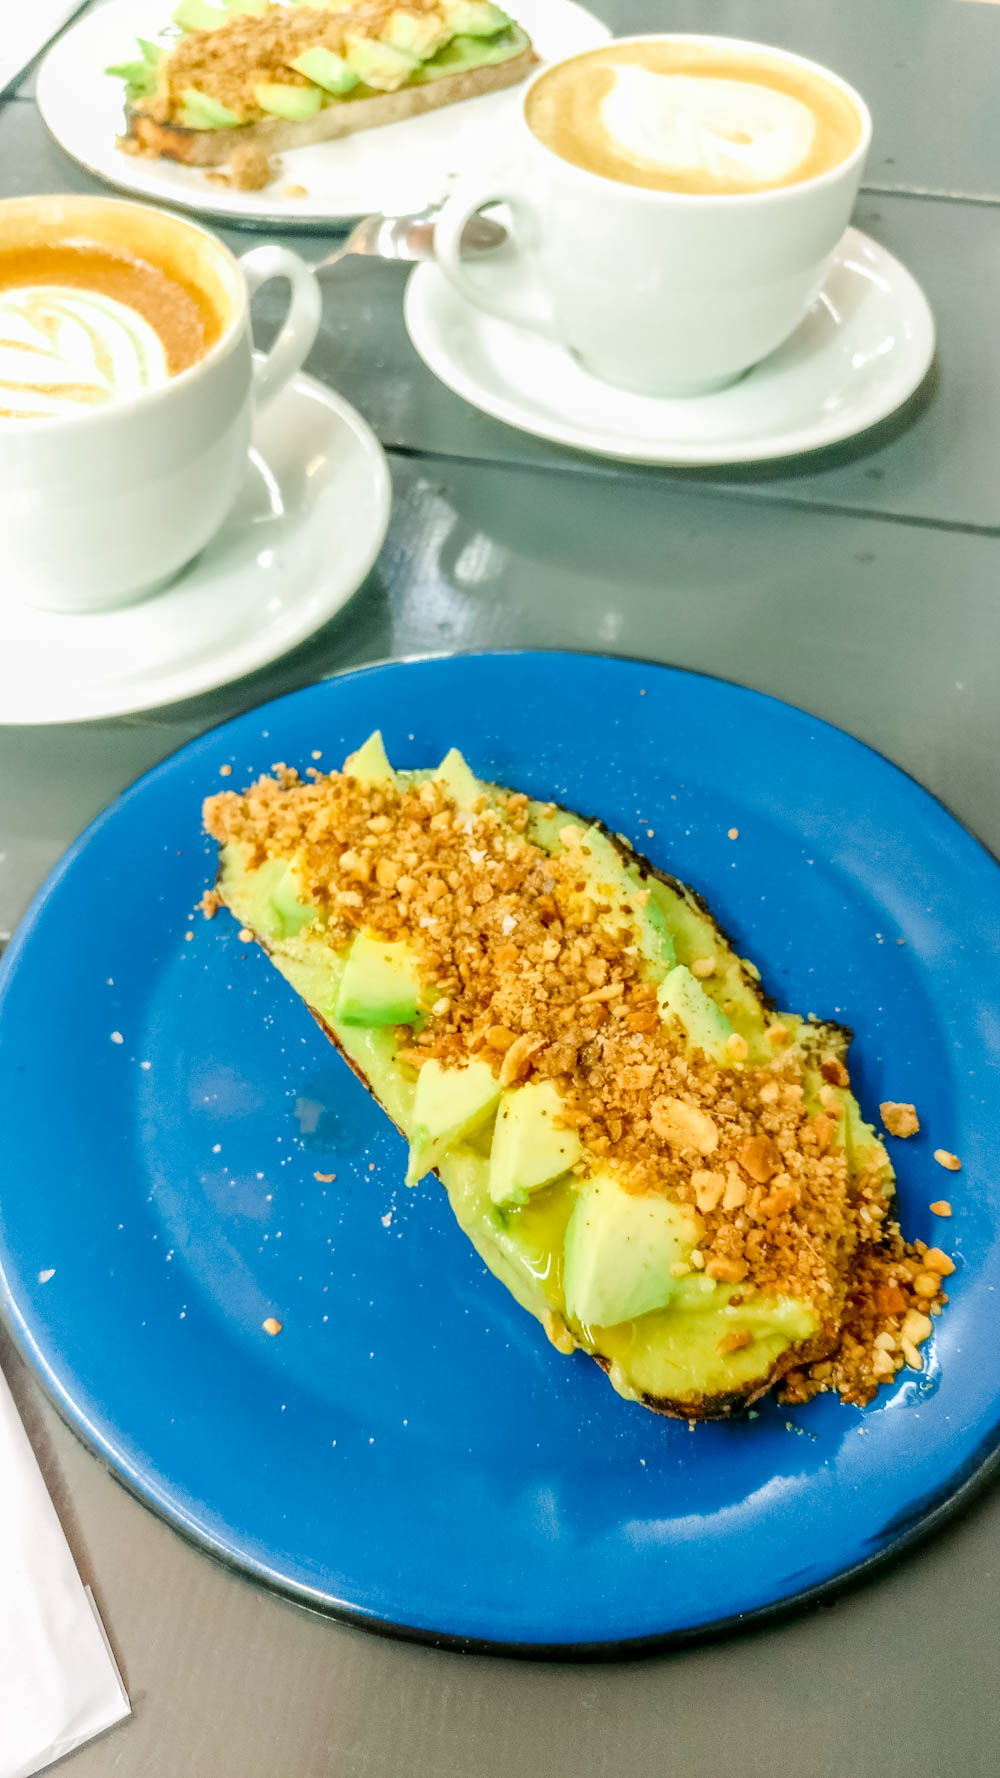 Avocado toast at Futuro Refeitório - Specialty coffee shop guide to São Paulo, Brazil | Aliz's Wonderland